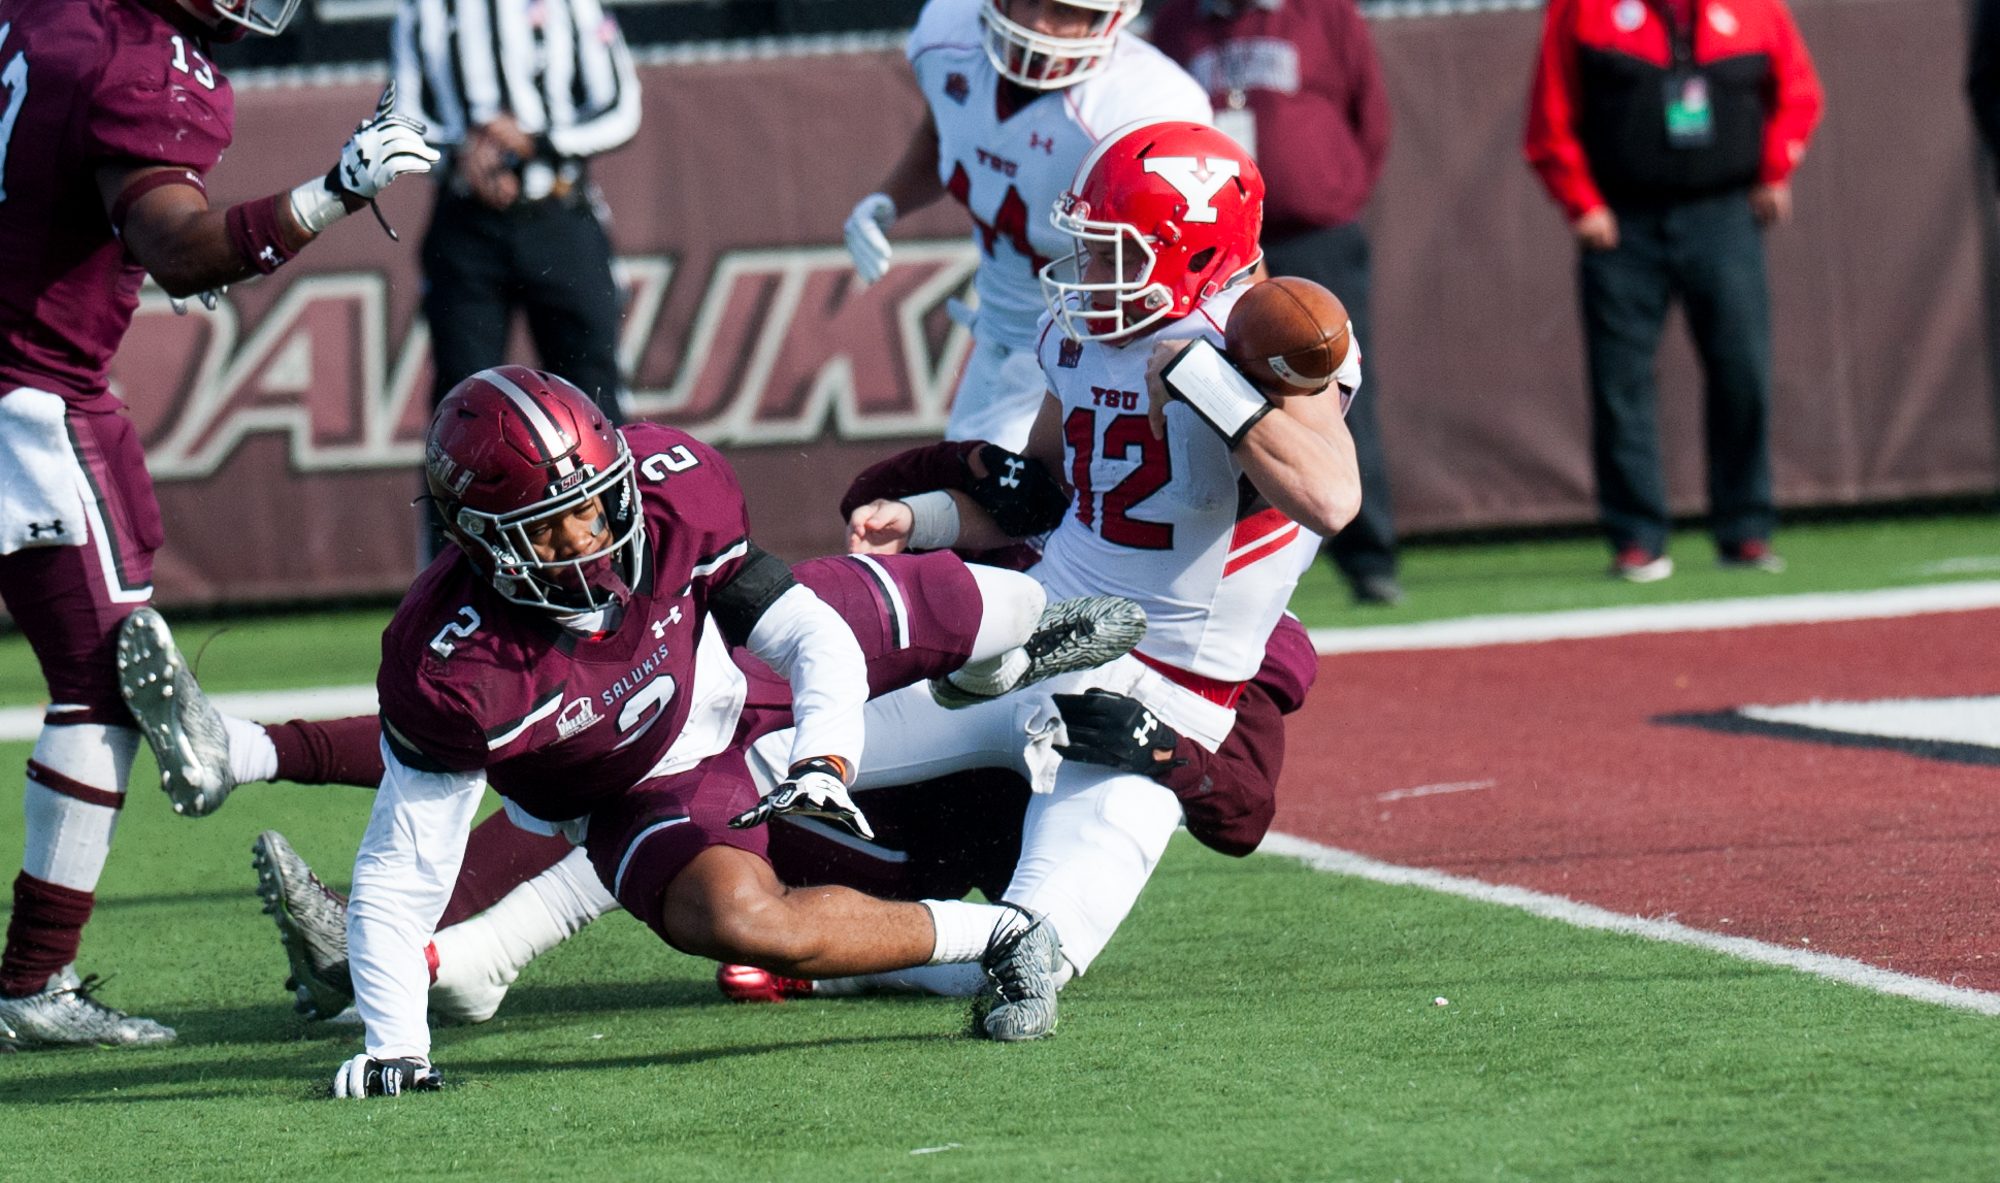 saluki football at youngstown state notes & links - southern